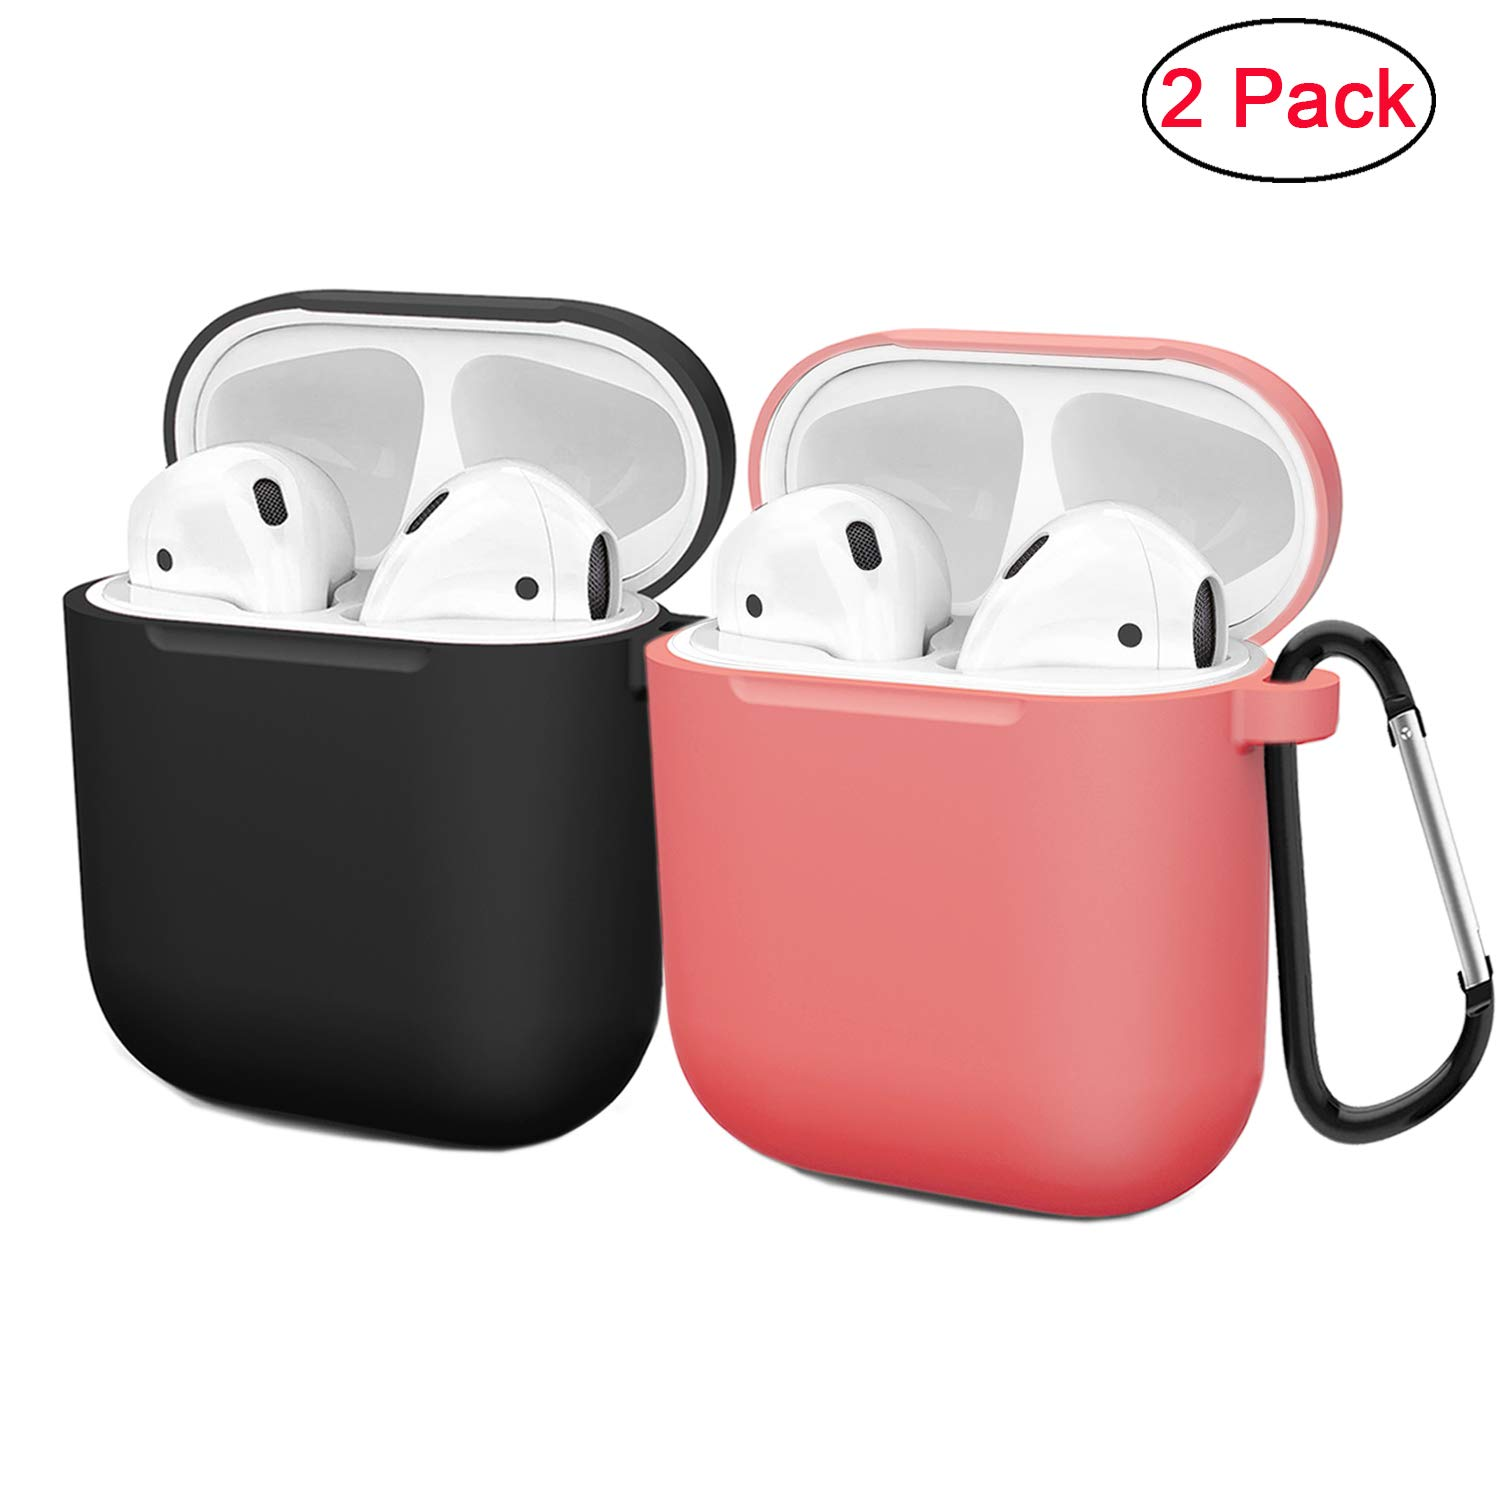 Black//Watermelon Red Compatible AirPods Case Cover Silicone Protective Skin for Apple Airpod Case 2/&1 2 Pack